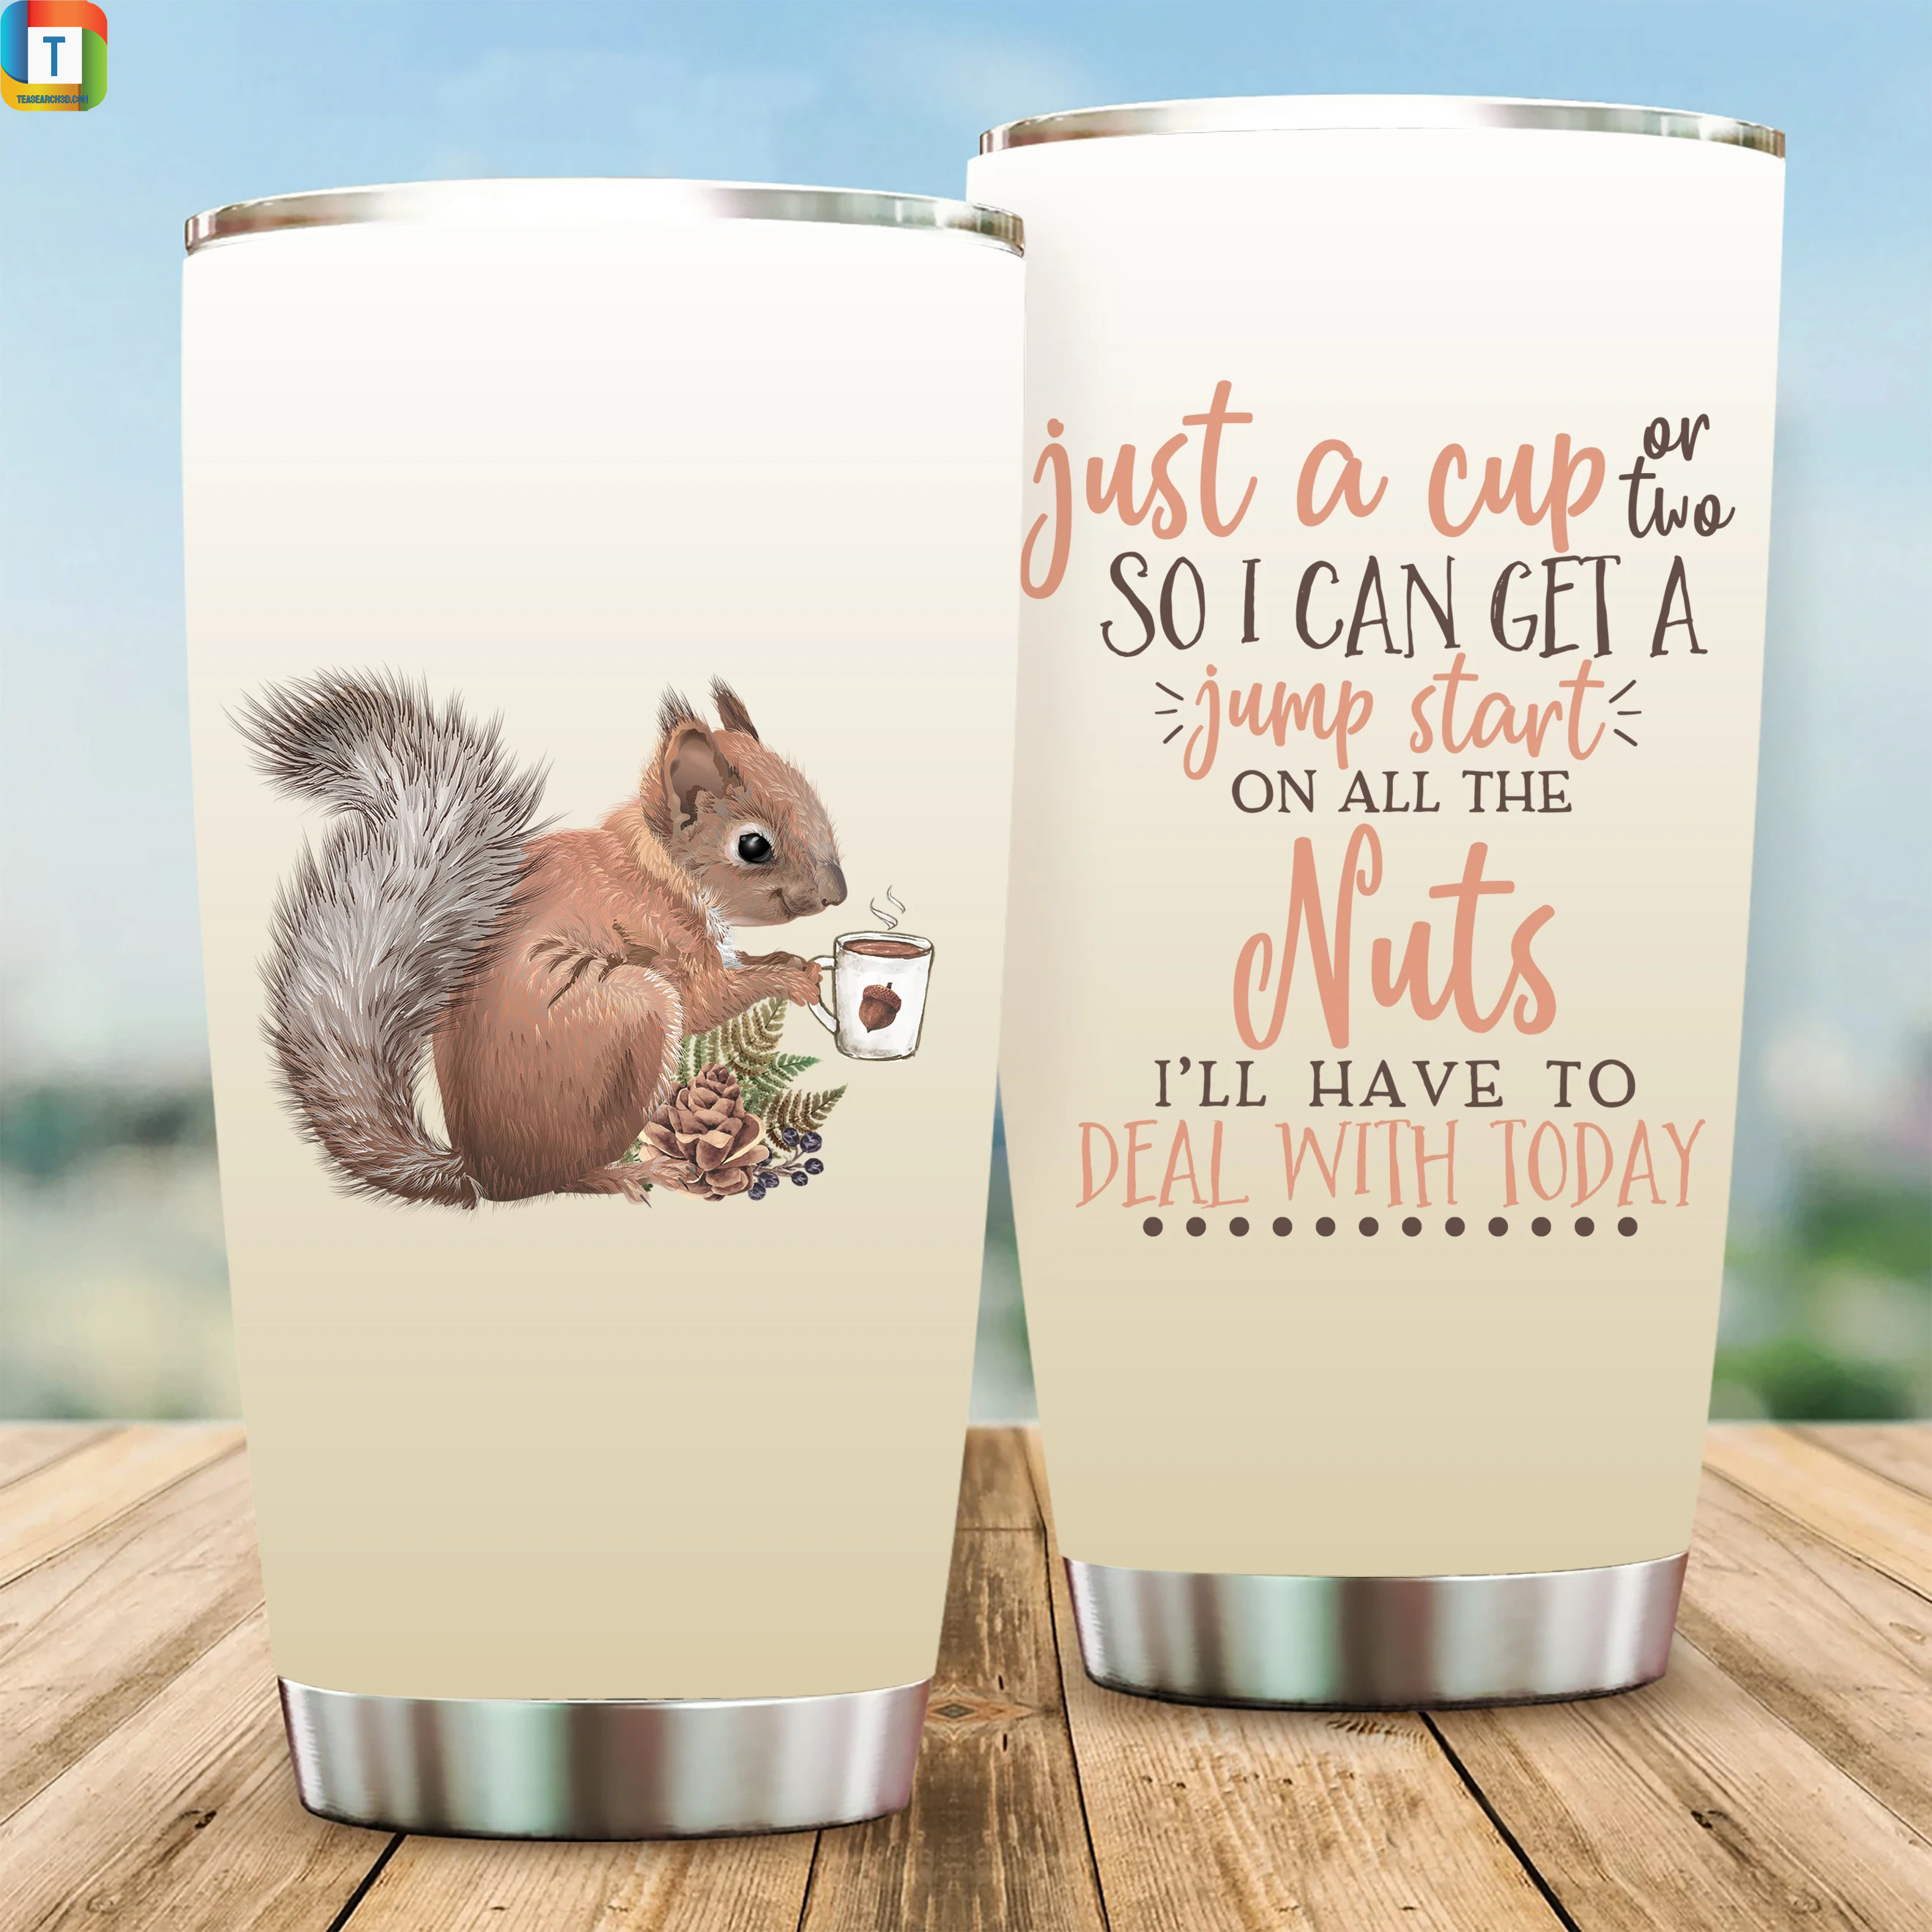 Just a cup or two so I can get a jump start on all the nuts tumbler